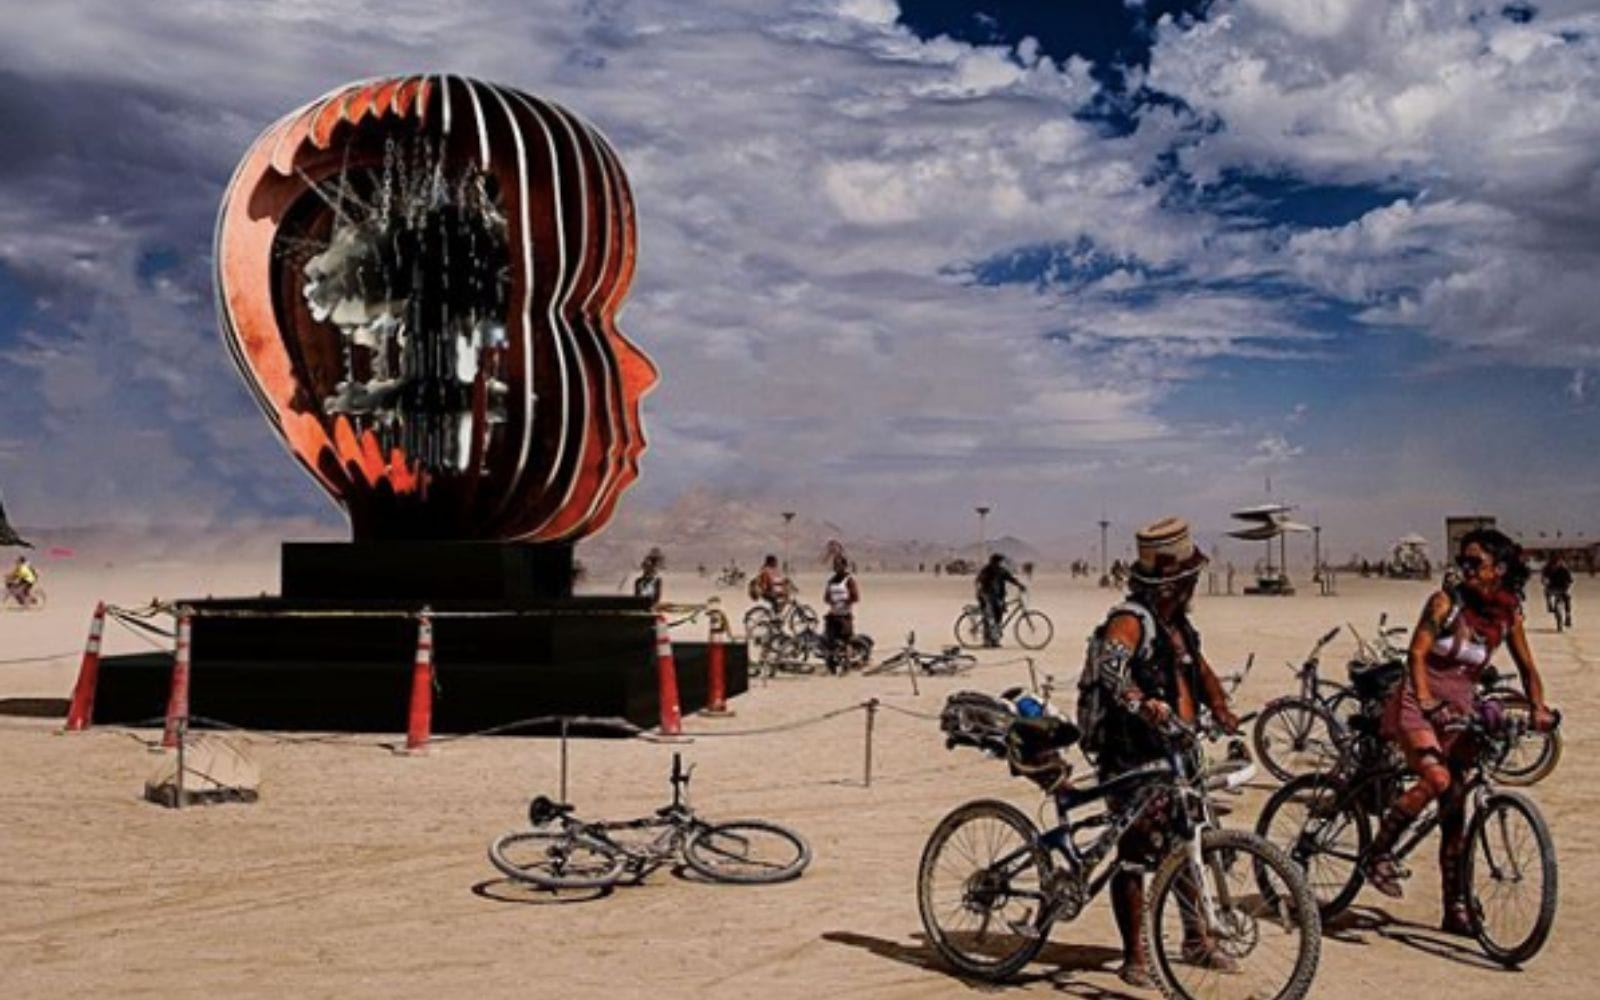 Burning Man ha cancelado la venta general de boletos debido al COVID-19 😞